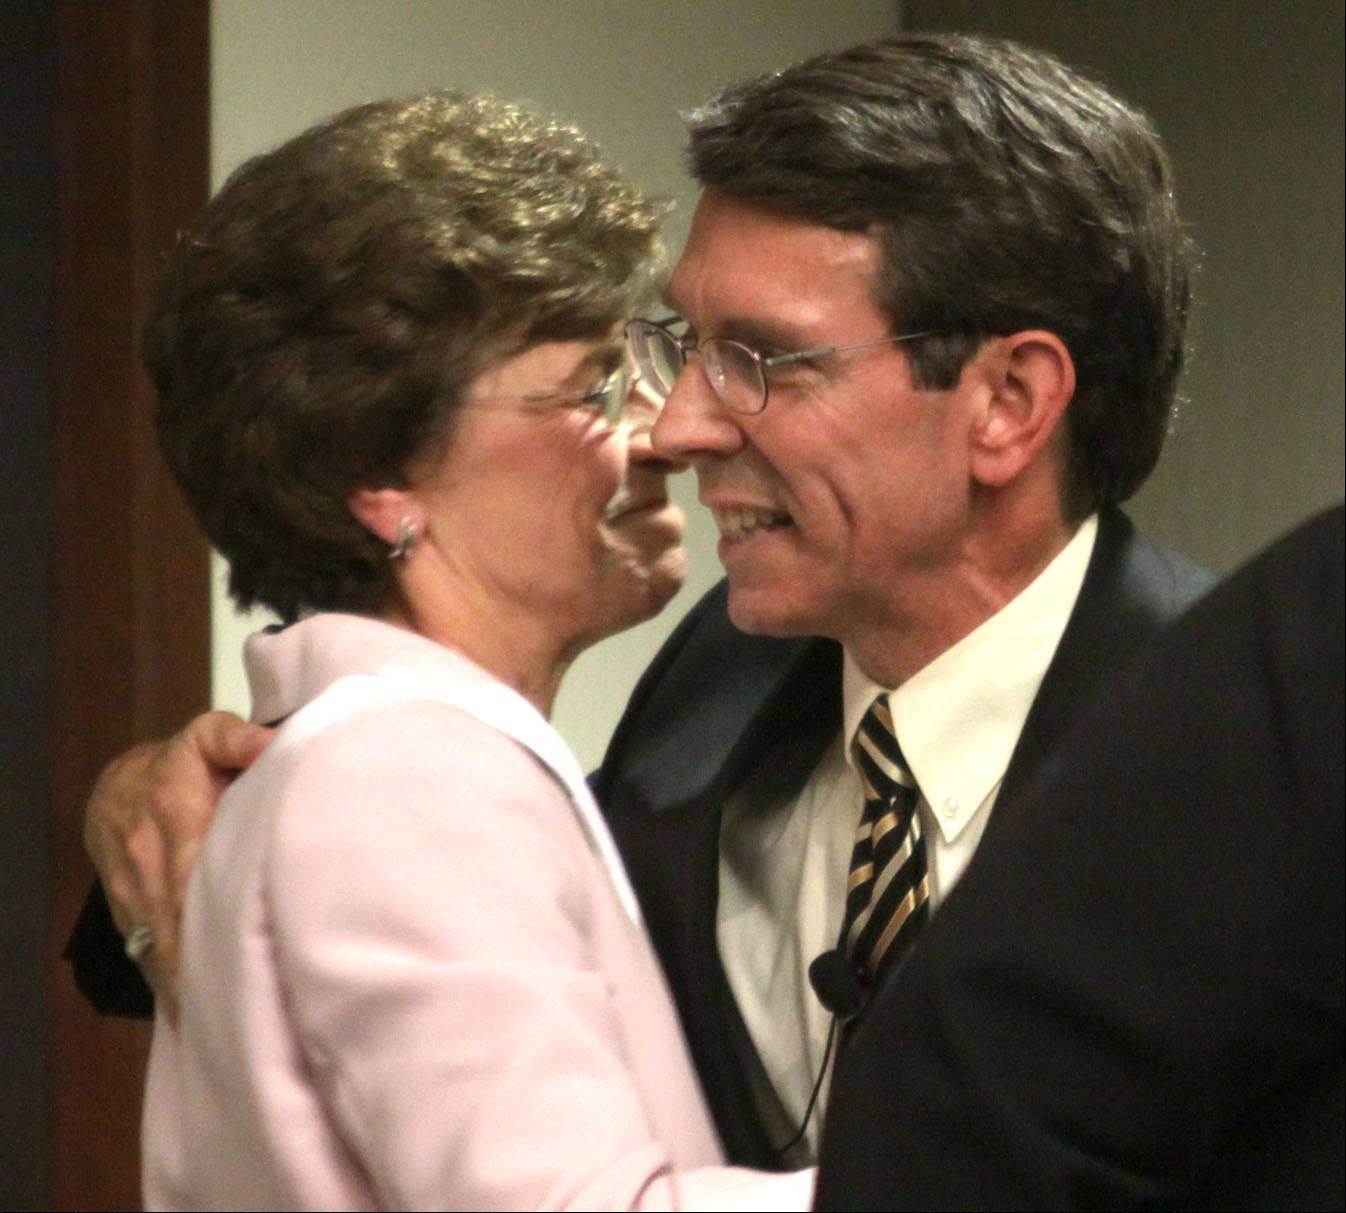 Outgoing Arlington Heights Village President Arlene Mulder, left, embraces Thomas Hayes just before Hayes was sworn in as the new village president Monday evening.